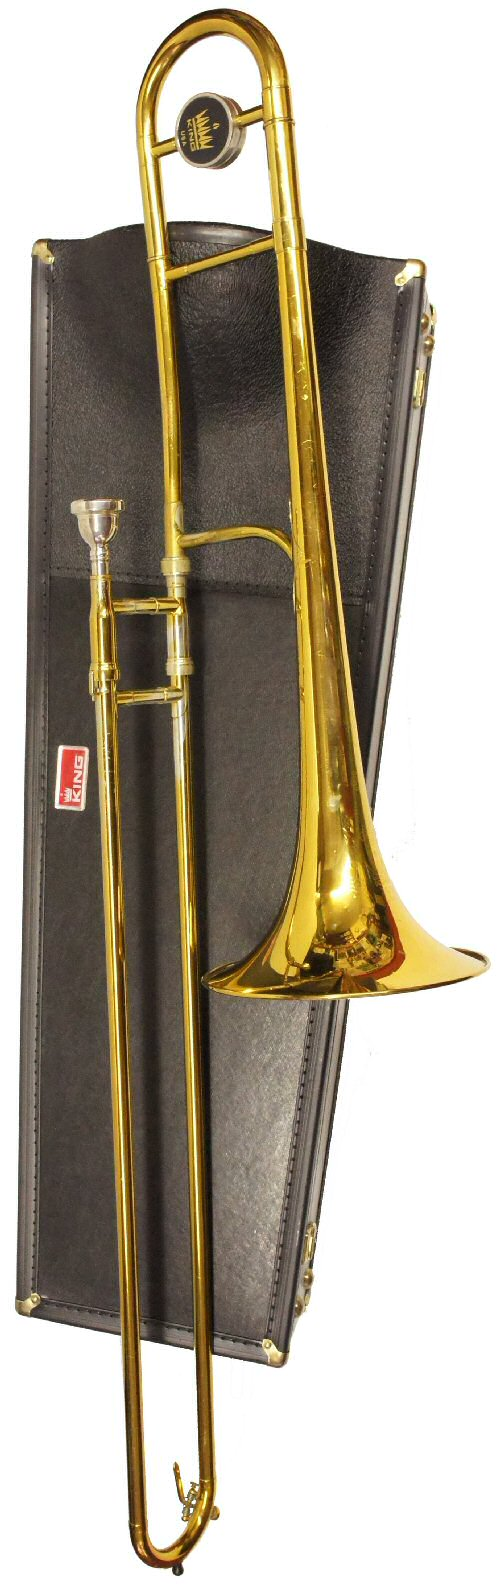 Second Hand King 3B Trombone